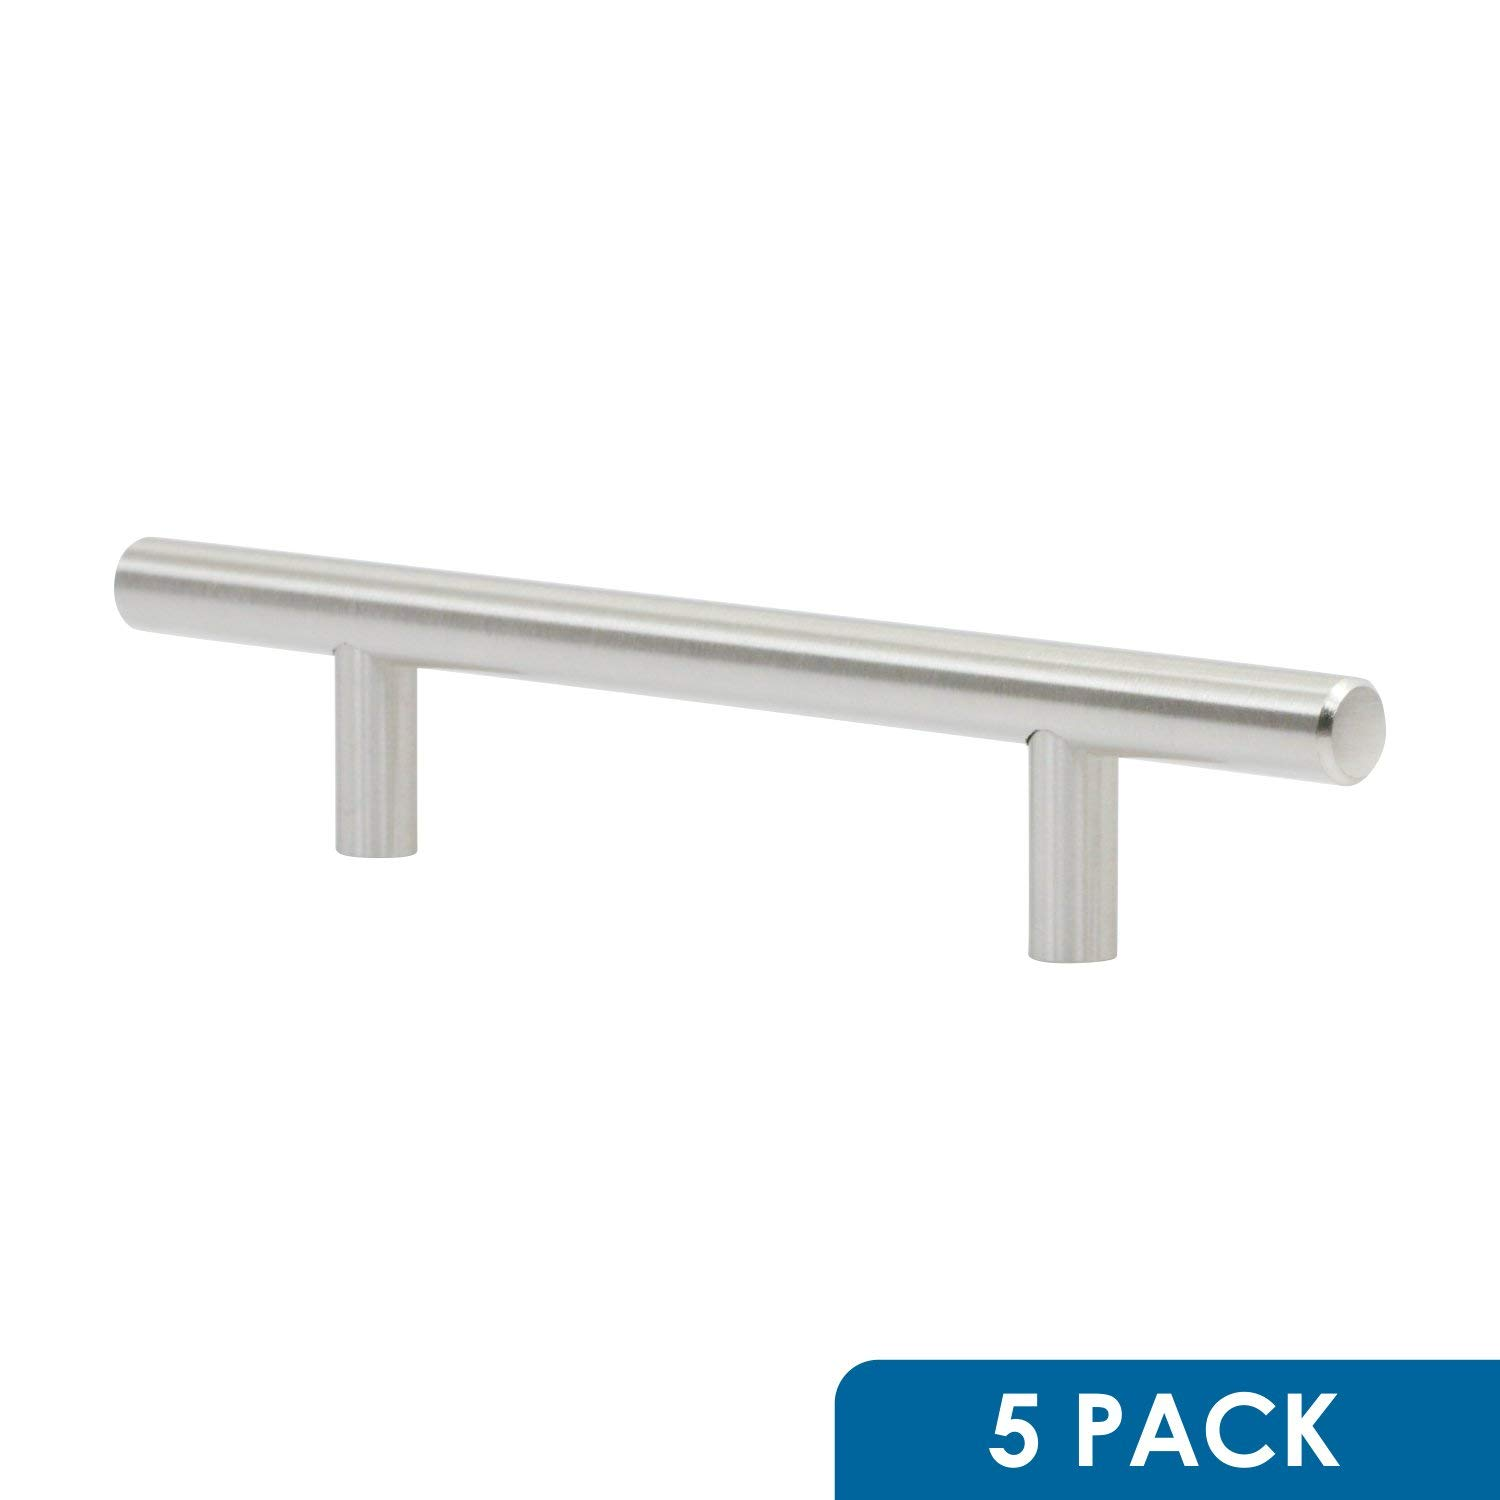 """5 Pack Rok Hardware 4-1/4"""" (108mm) Hole Modern Bar Style Brushed Nickel Kitchen Vanity Dresser Cabinet Pull Handle 7-13/32"""" (188mm) Overall Length P503108BN"""